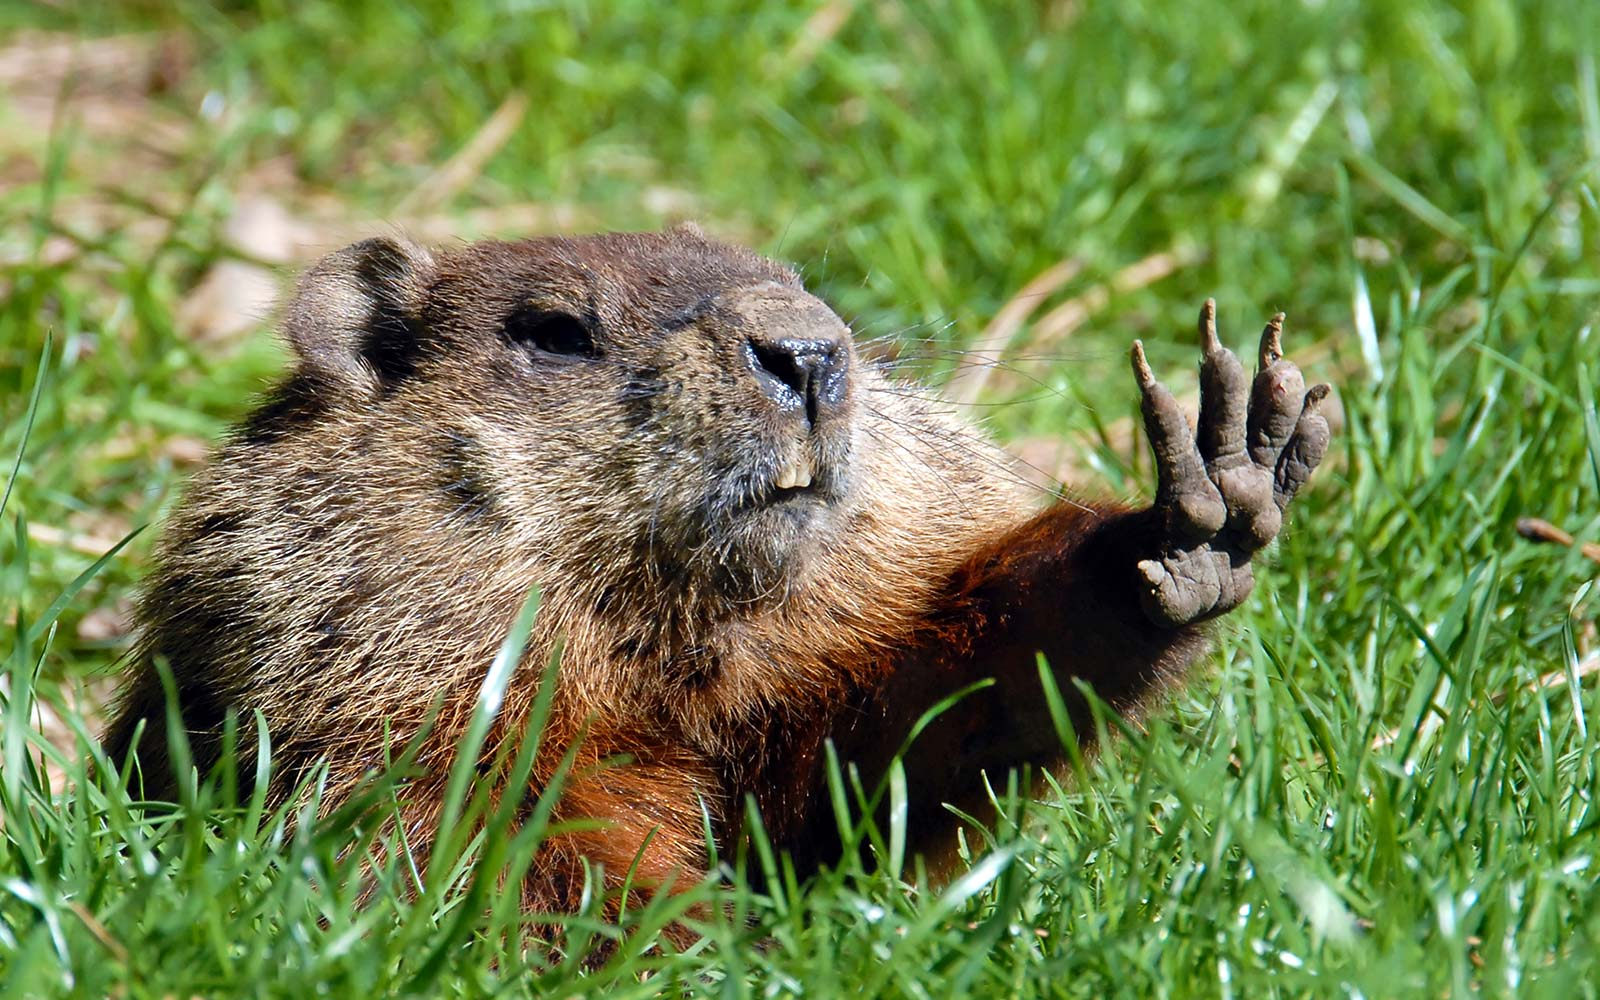 Groundhog Shadow Winter Spring Prediction